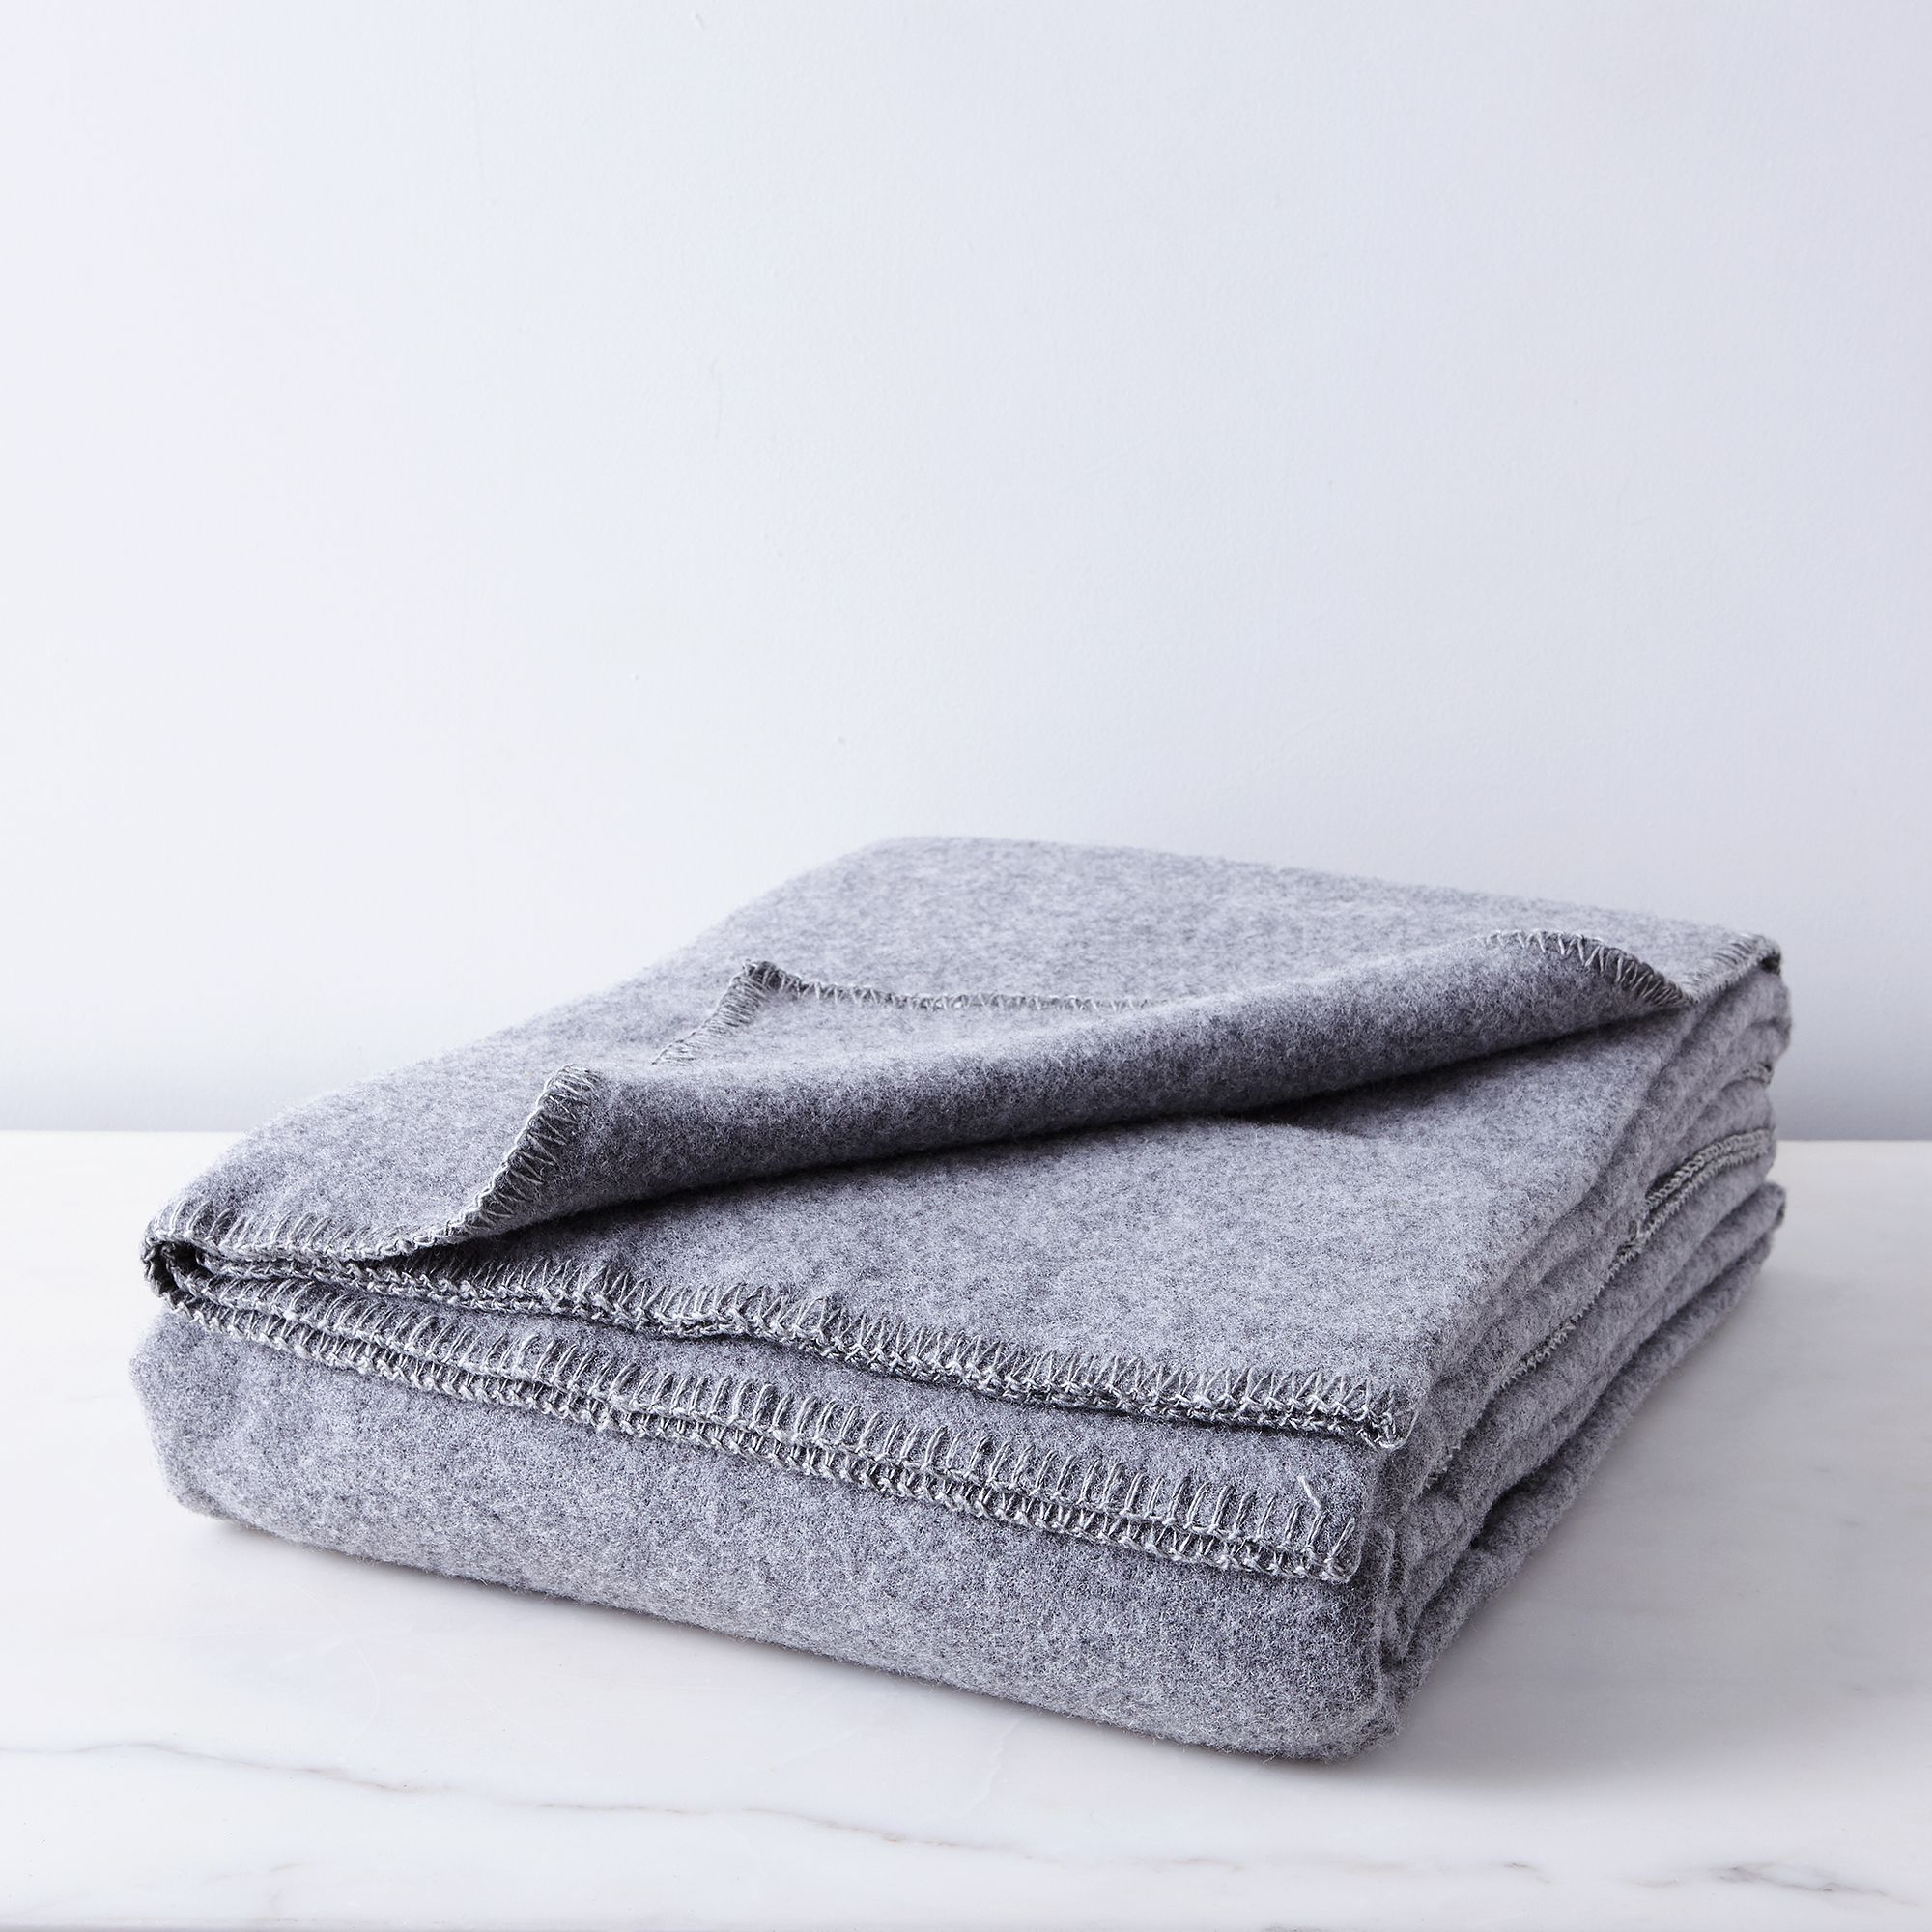 9faab718 63cd 4c42 8289 96be52d84f43  2016 1025 faribault pure and simple wool whipstitch edged blanket heather grey silo rocky luten 003